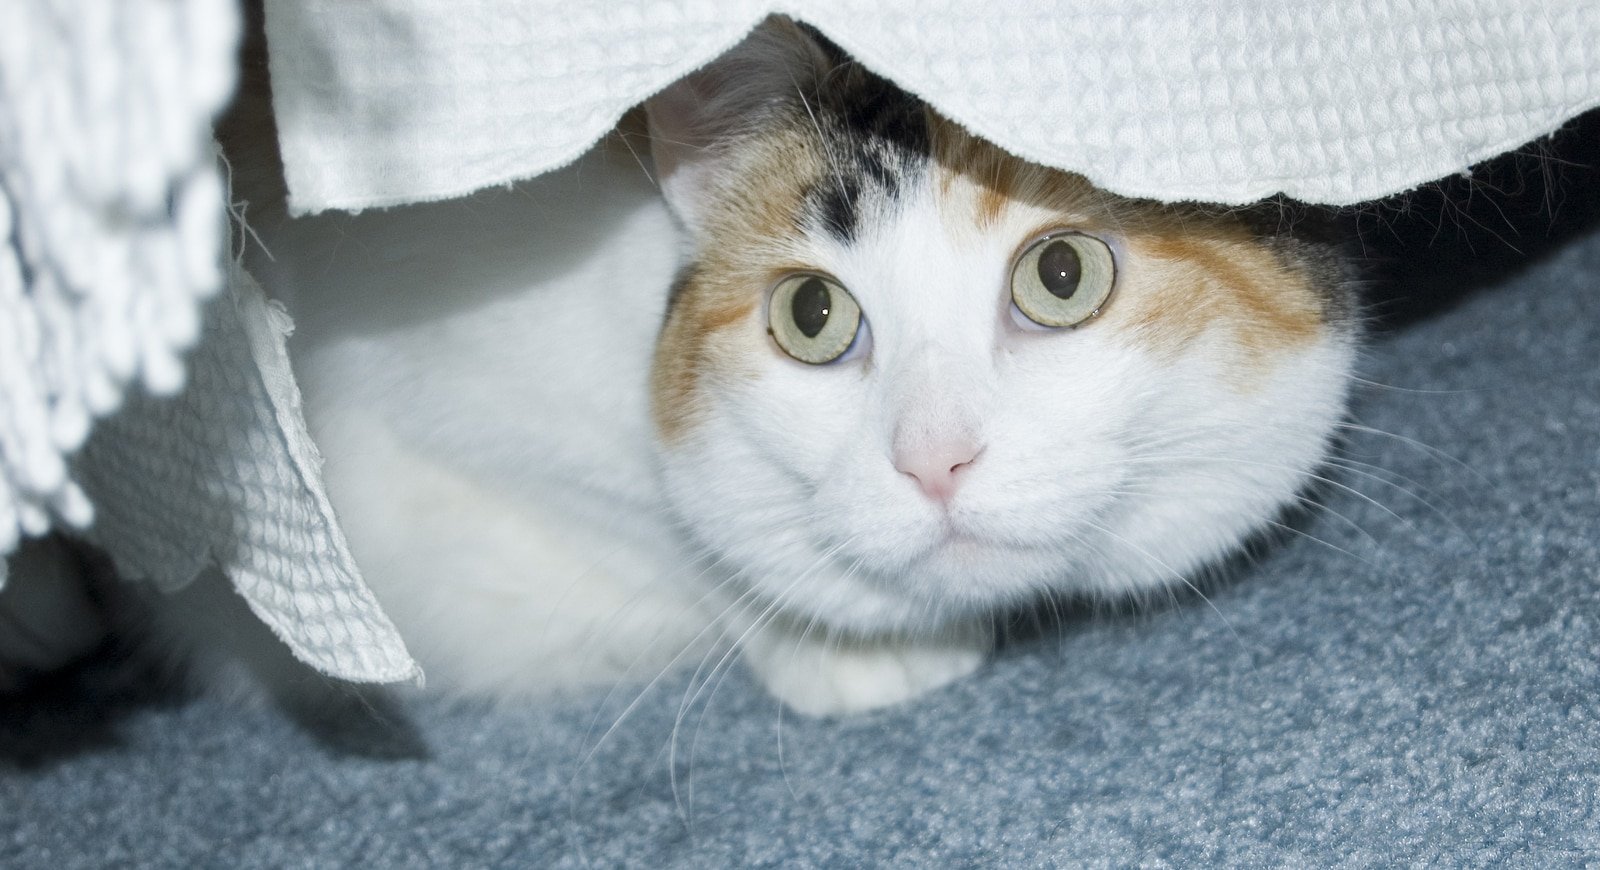 White calico cat hides underneath bed.